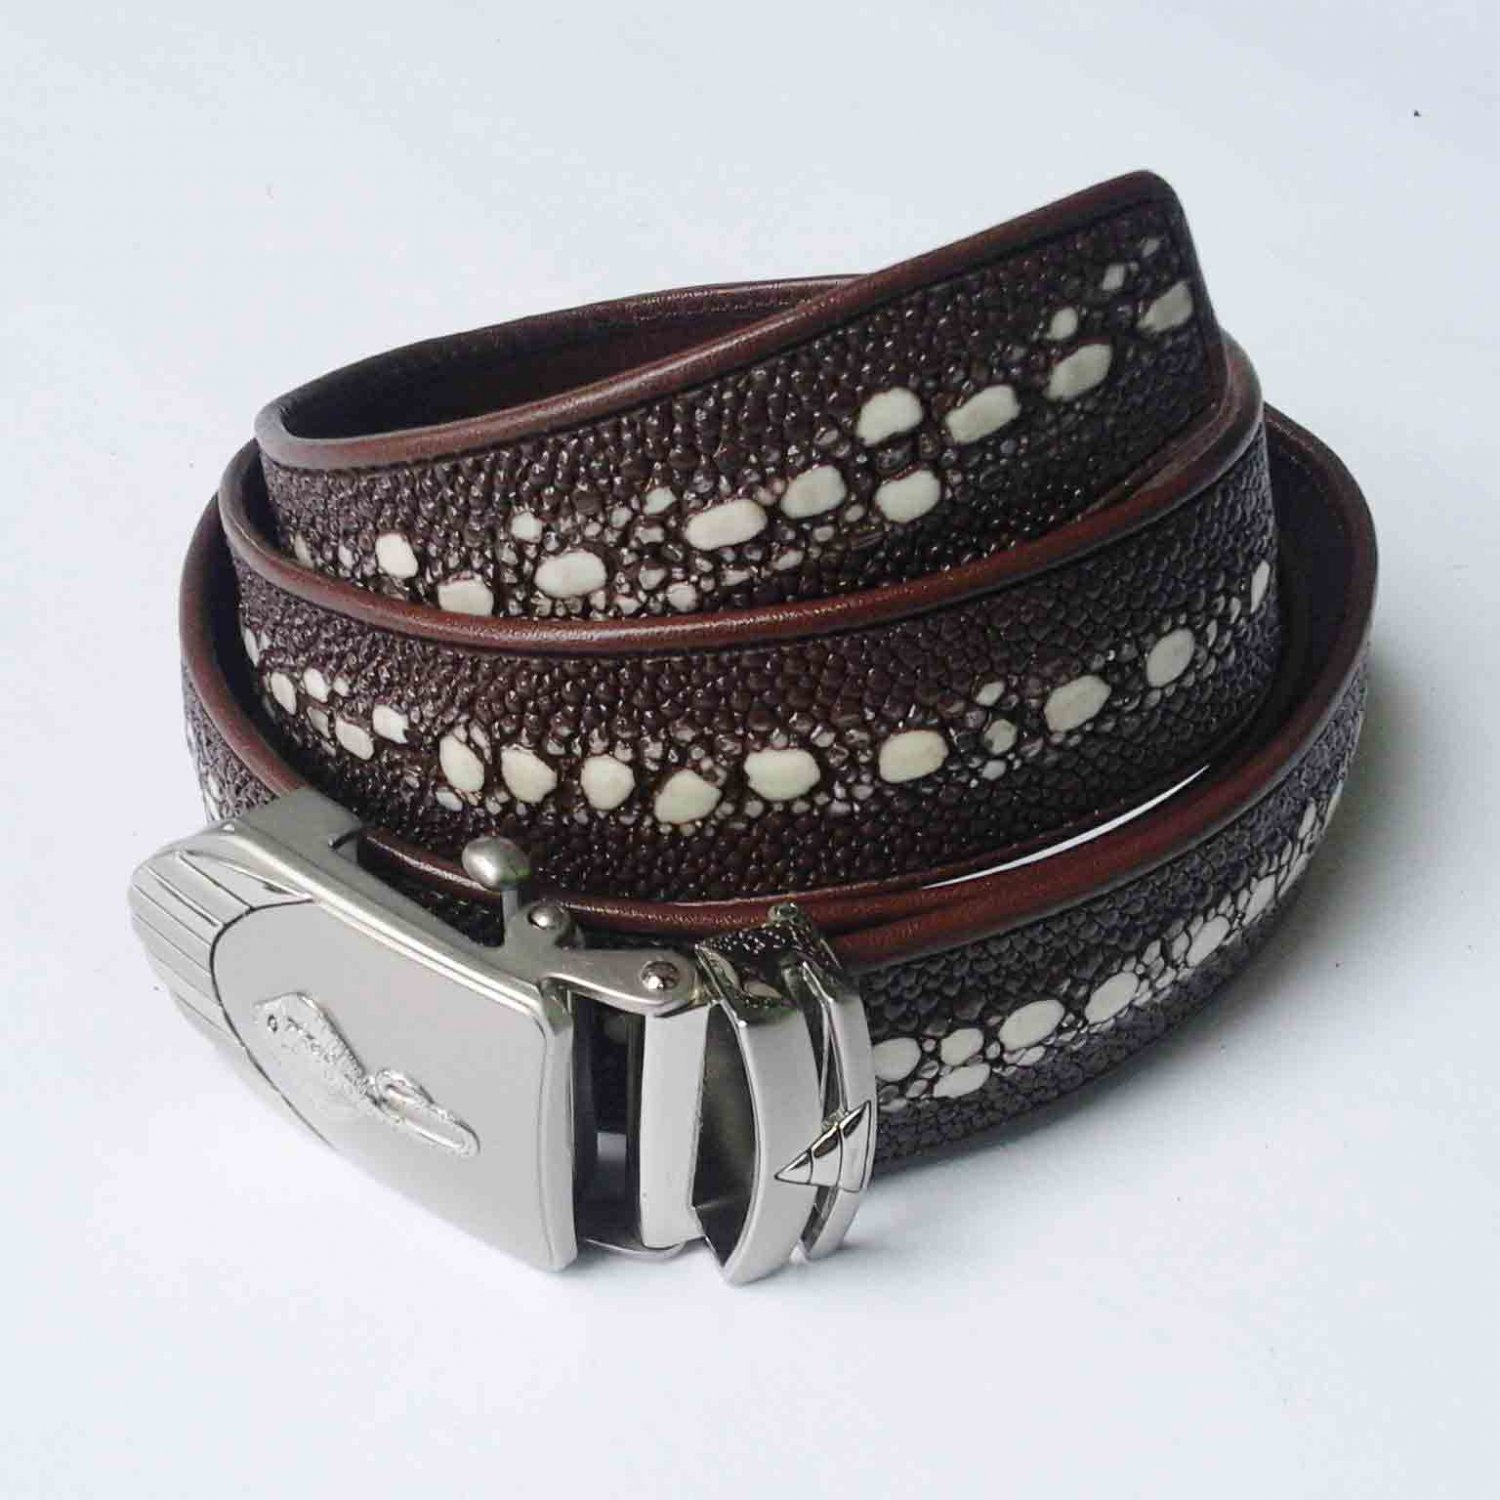 Stingray Leather Belt For Men Genuine Leather Belt Automatic Belt Buckle Brown Full Row Fishbone